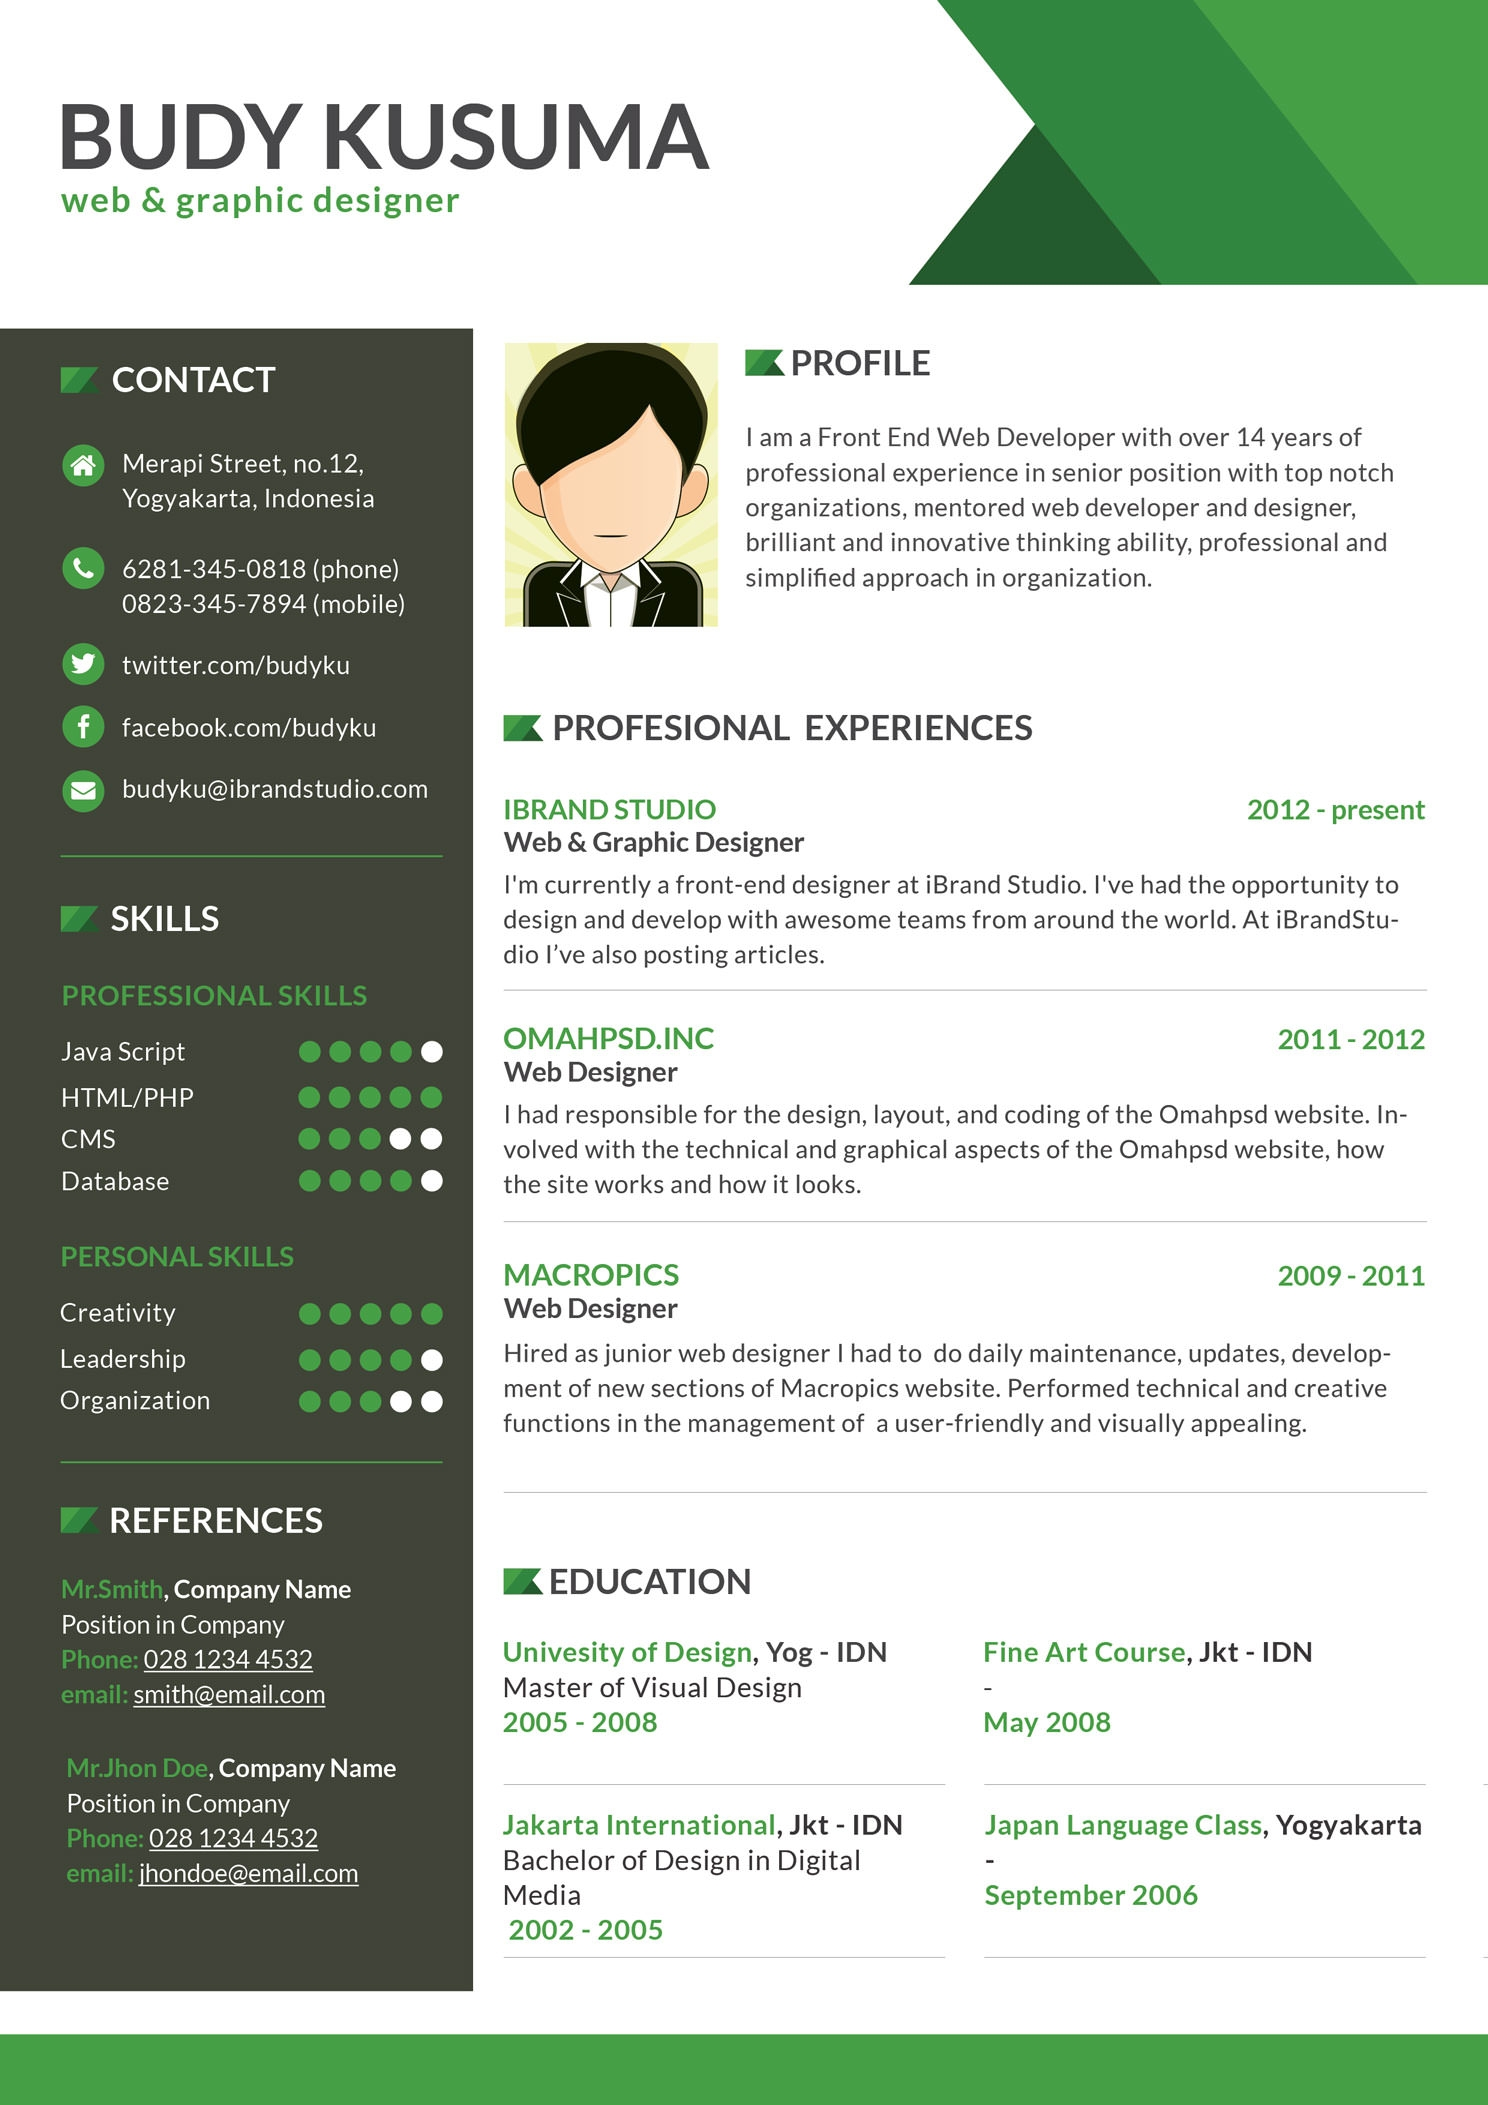 flasher resume template green download button 171211112111121 - Modern Resume Template Free Download